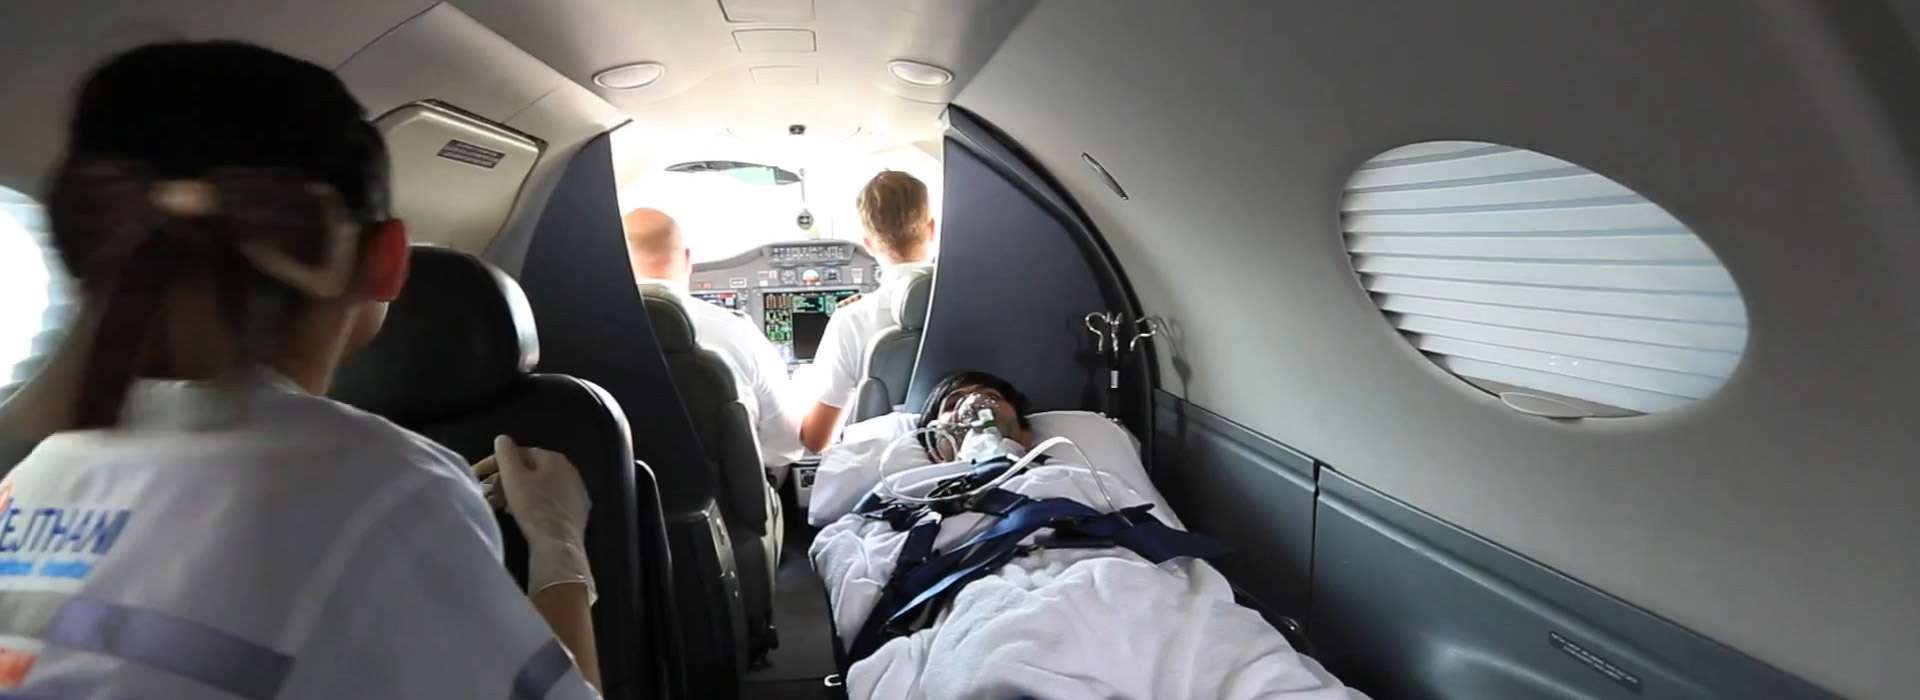 Medical Evacuations Flight Service